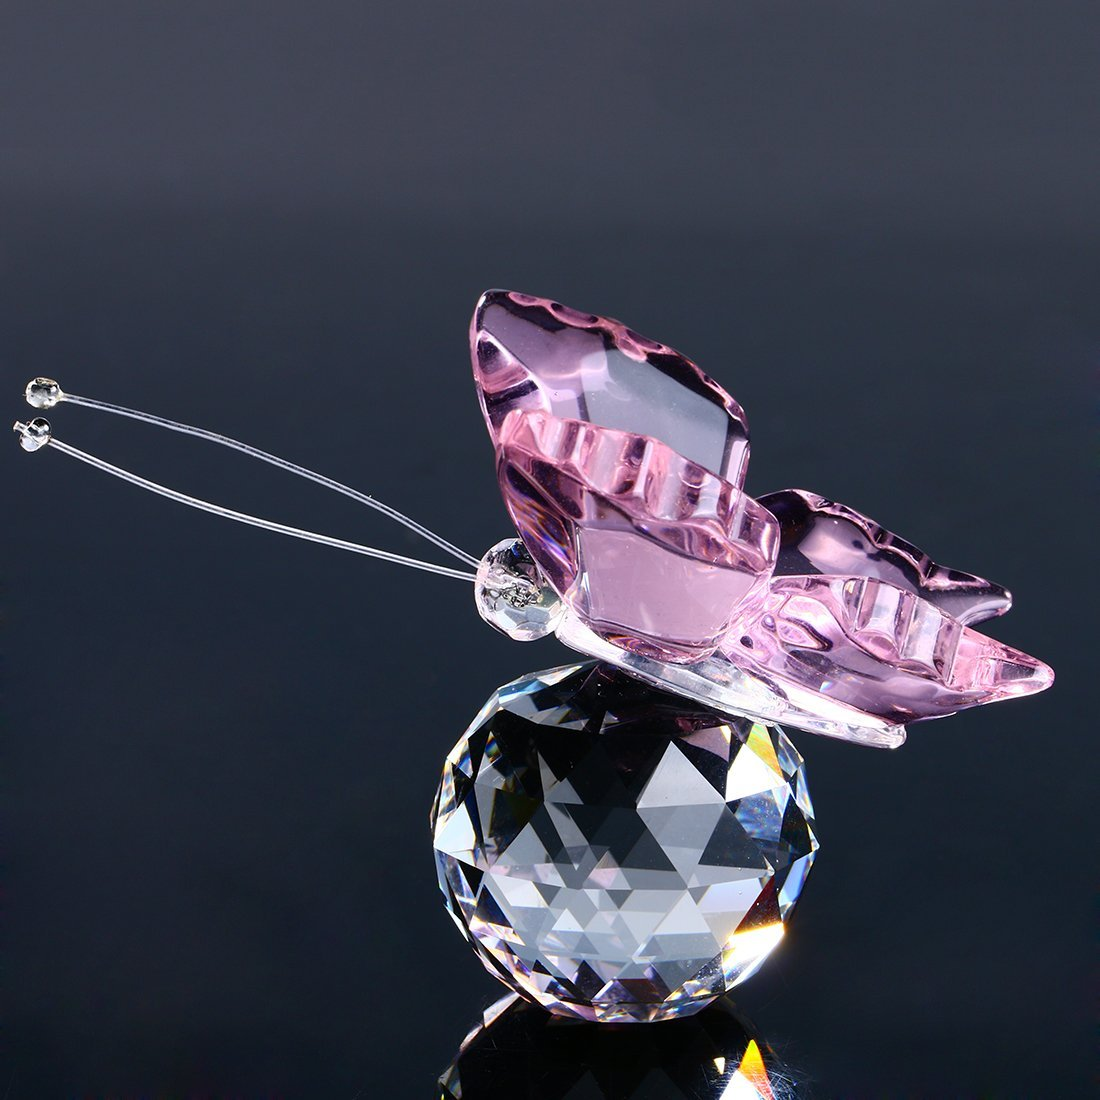 H&D Pink Crystal Flying Butterfly with Crystal Ball Base Figurine Collection Cut Glass Ornament Statue Animal Collectible